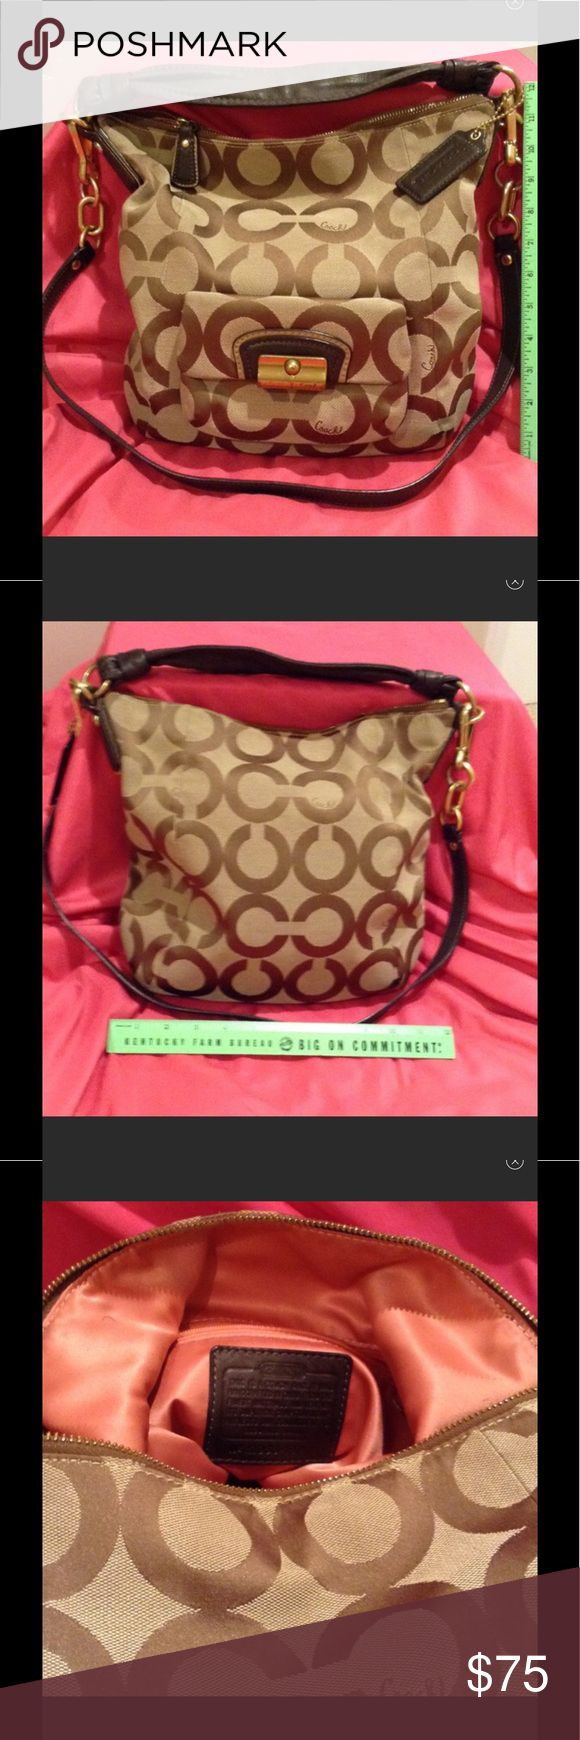 Coach shoulder bag in great condition. Beautiful bag with extra strap it is excellent condition. Coach Bags Satchels